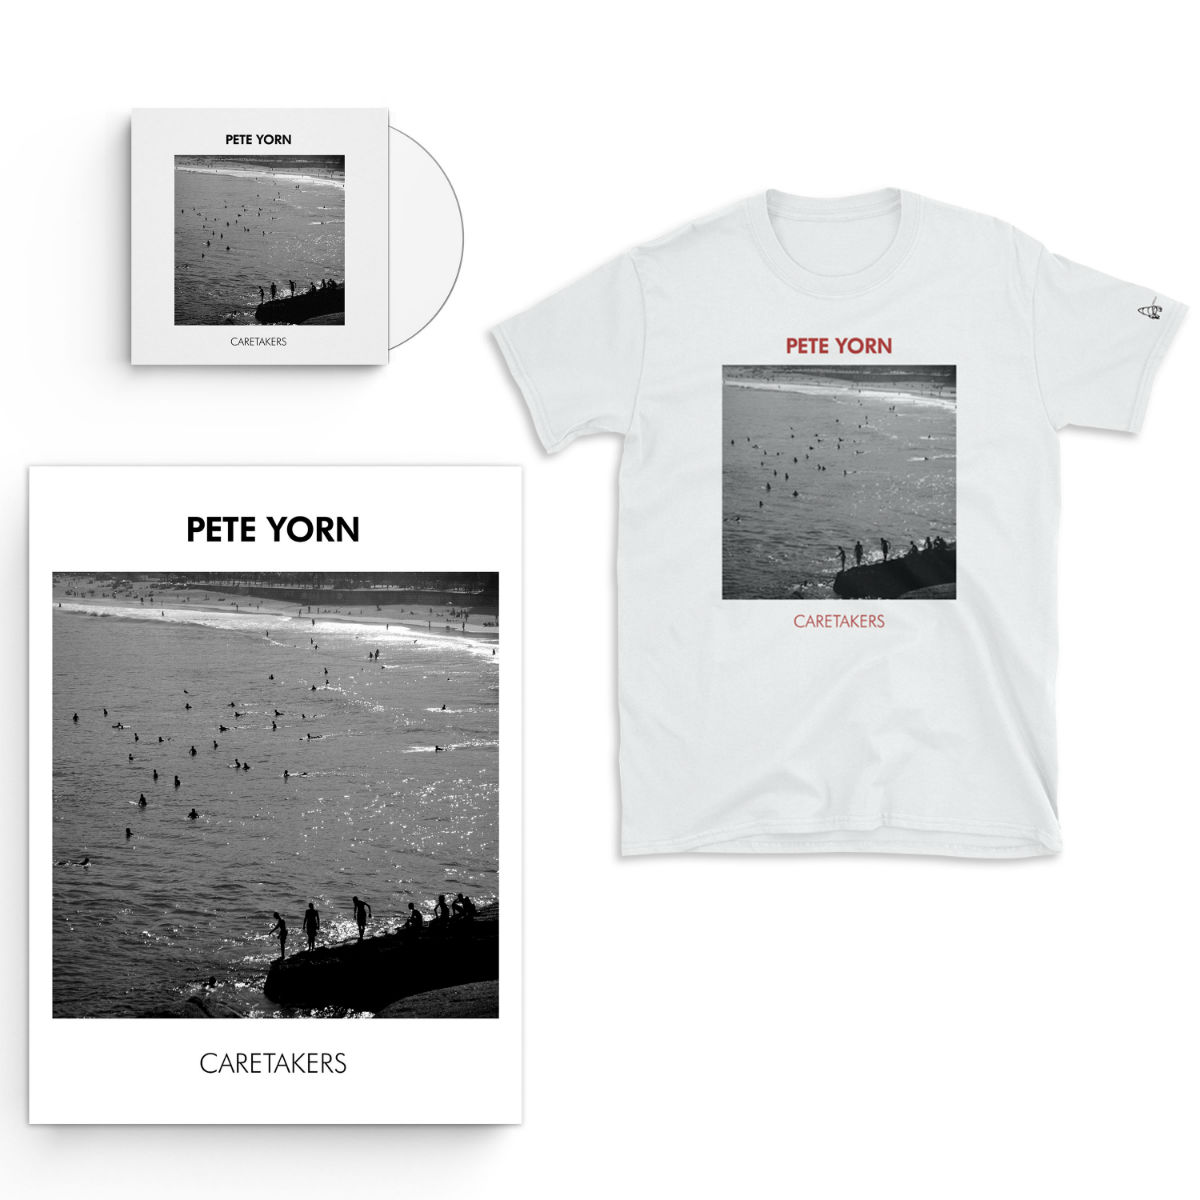 Caretakers CD or Digital Download, Limited Edition Autographed Poster and Exclusive T-shirt Bundle